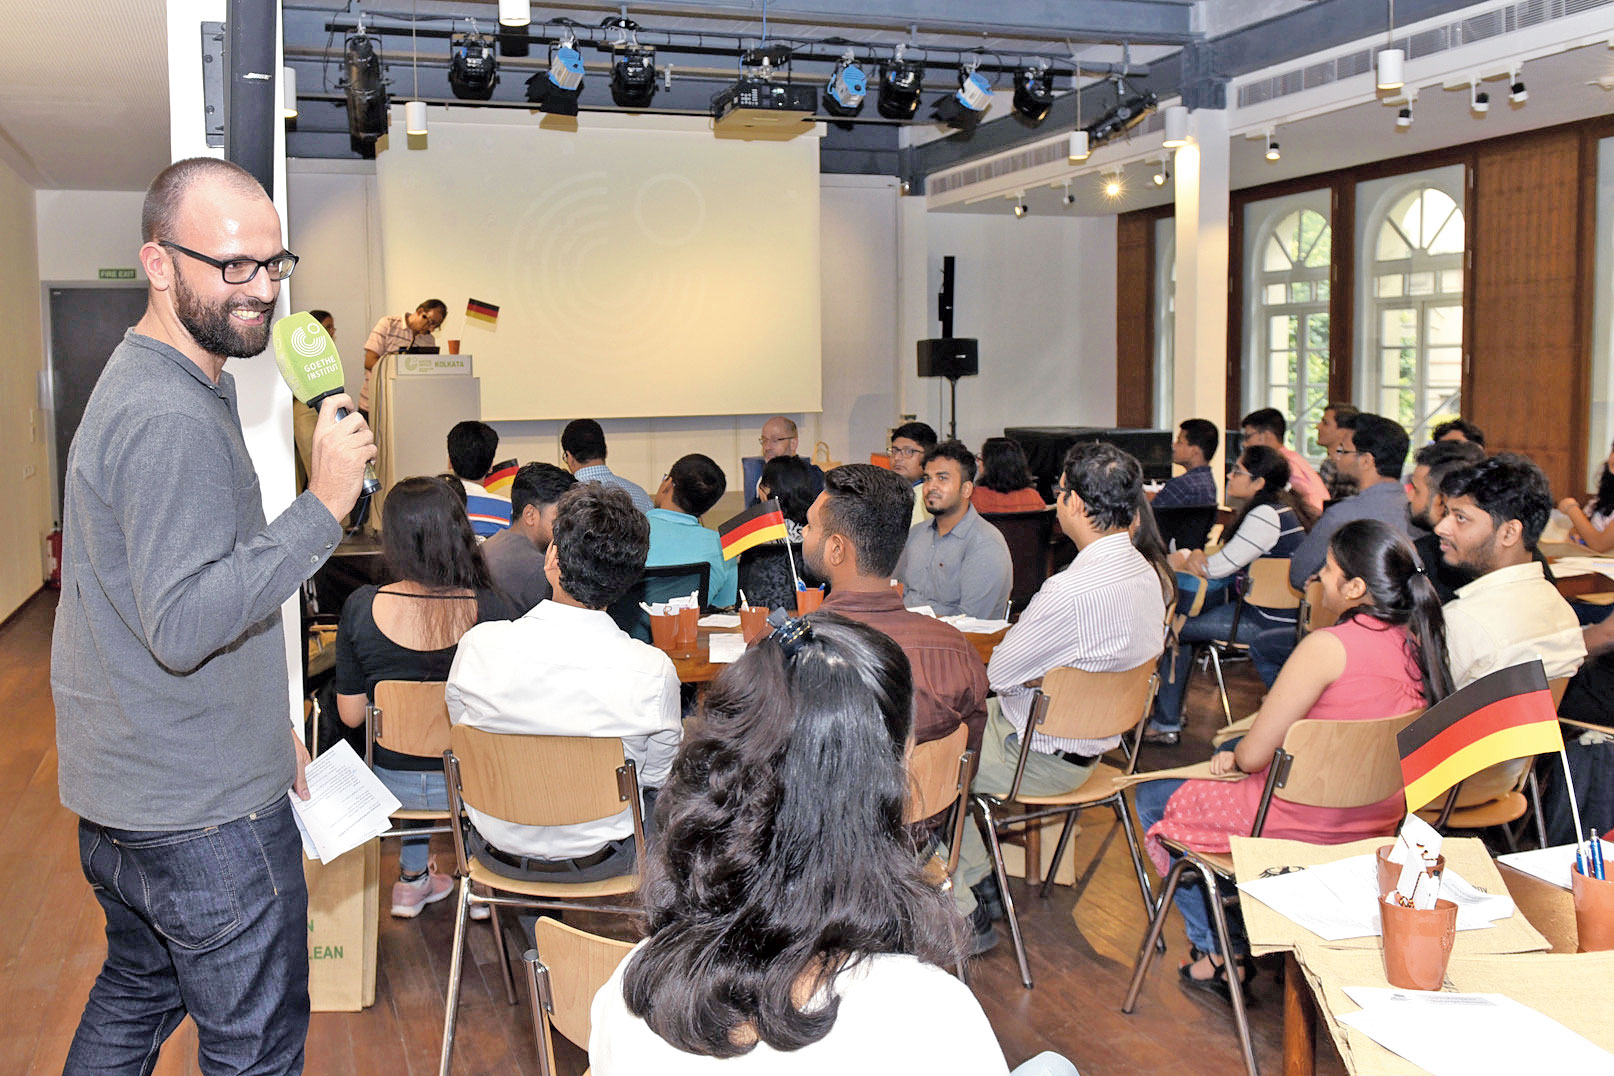 Jonas Wachinger, a German student interning with the German consulate in Calcutta, with students at Tuesday's session at Goethe-Institut.